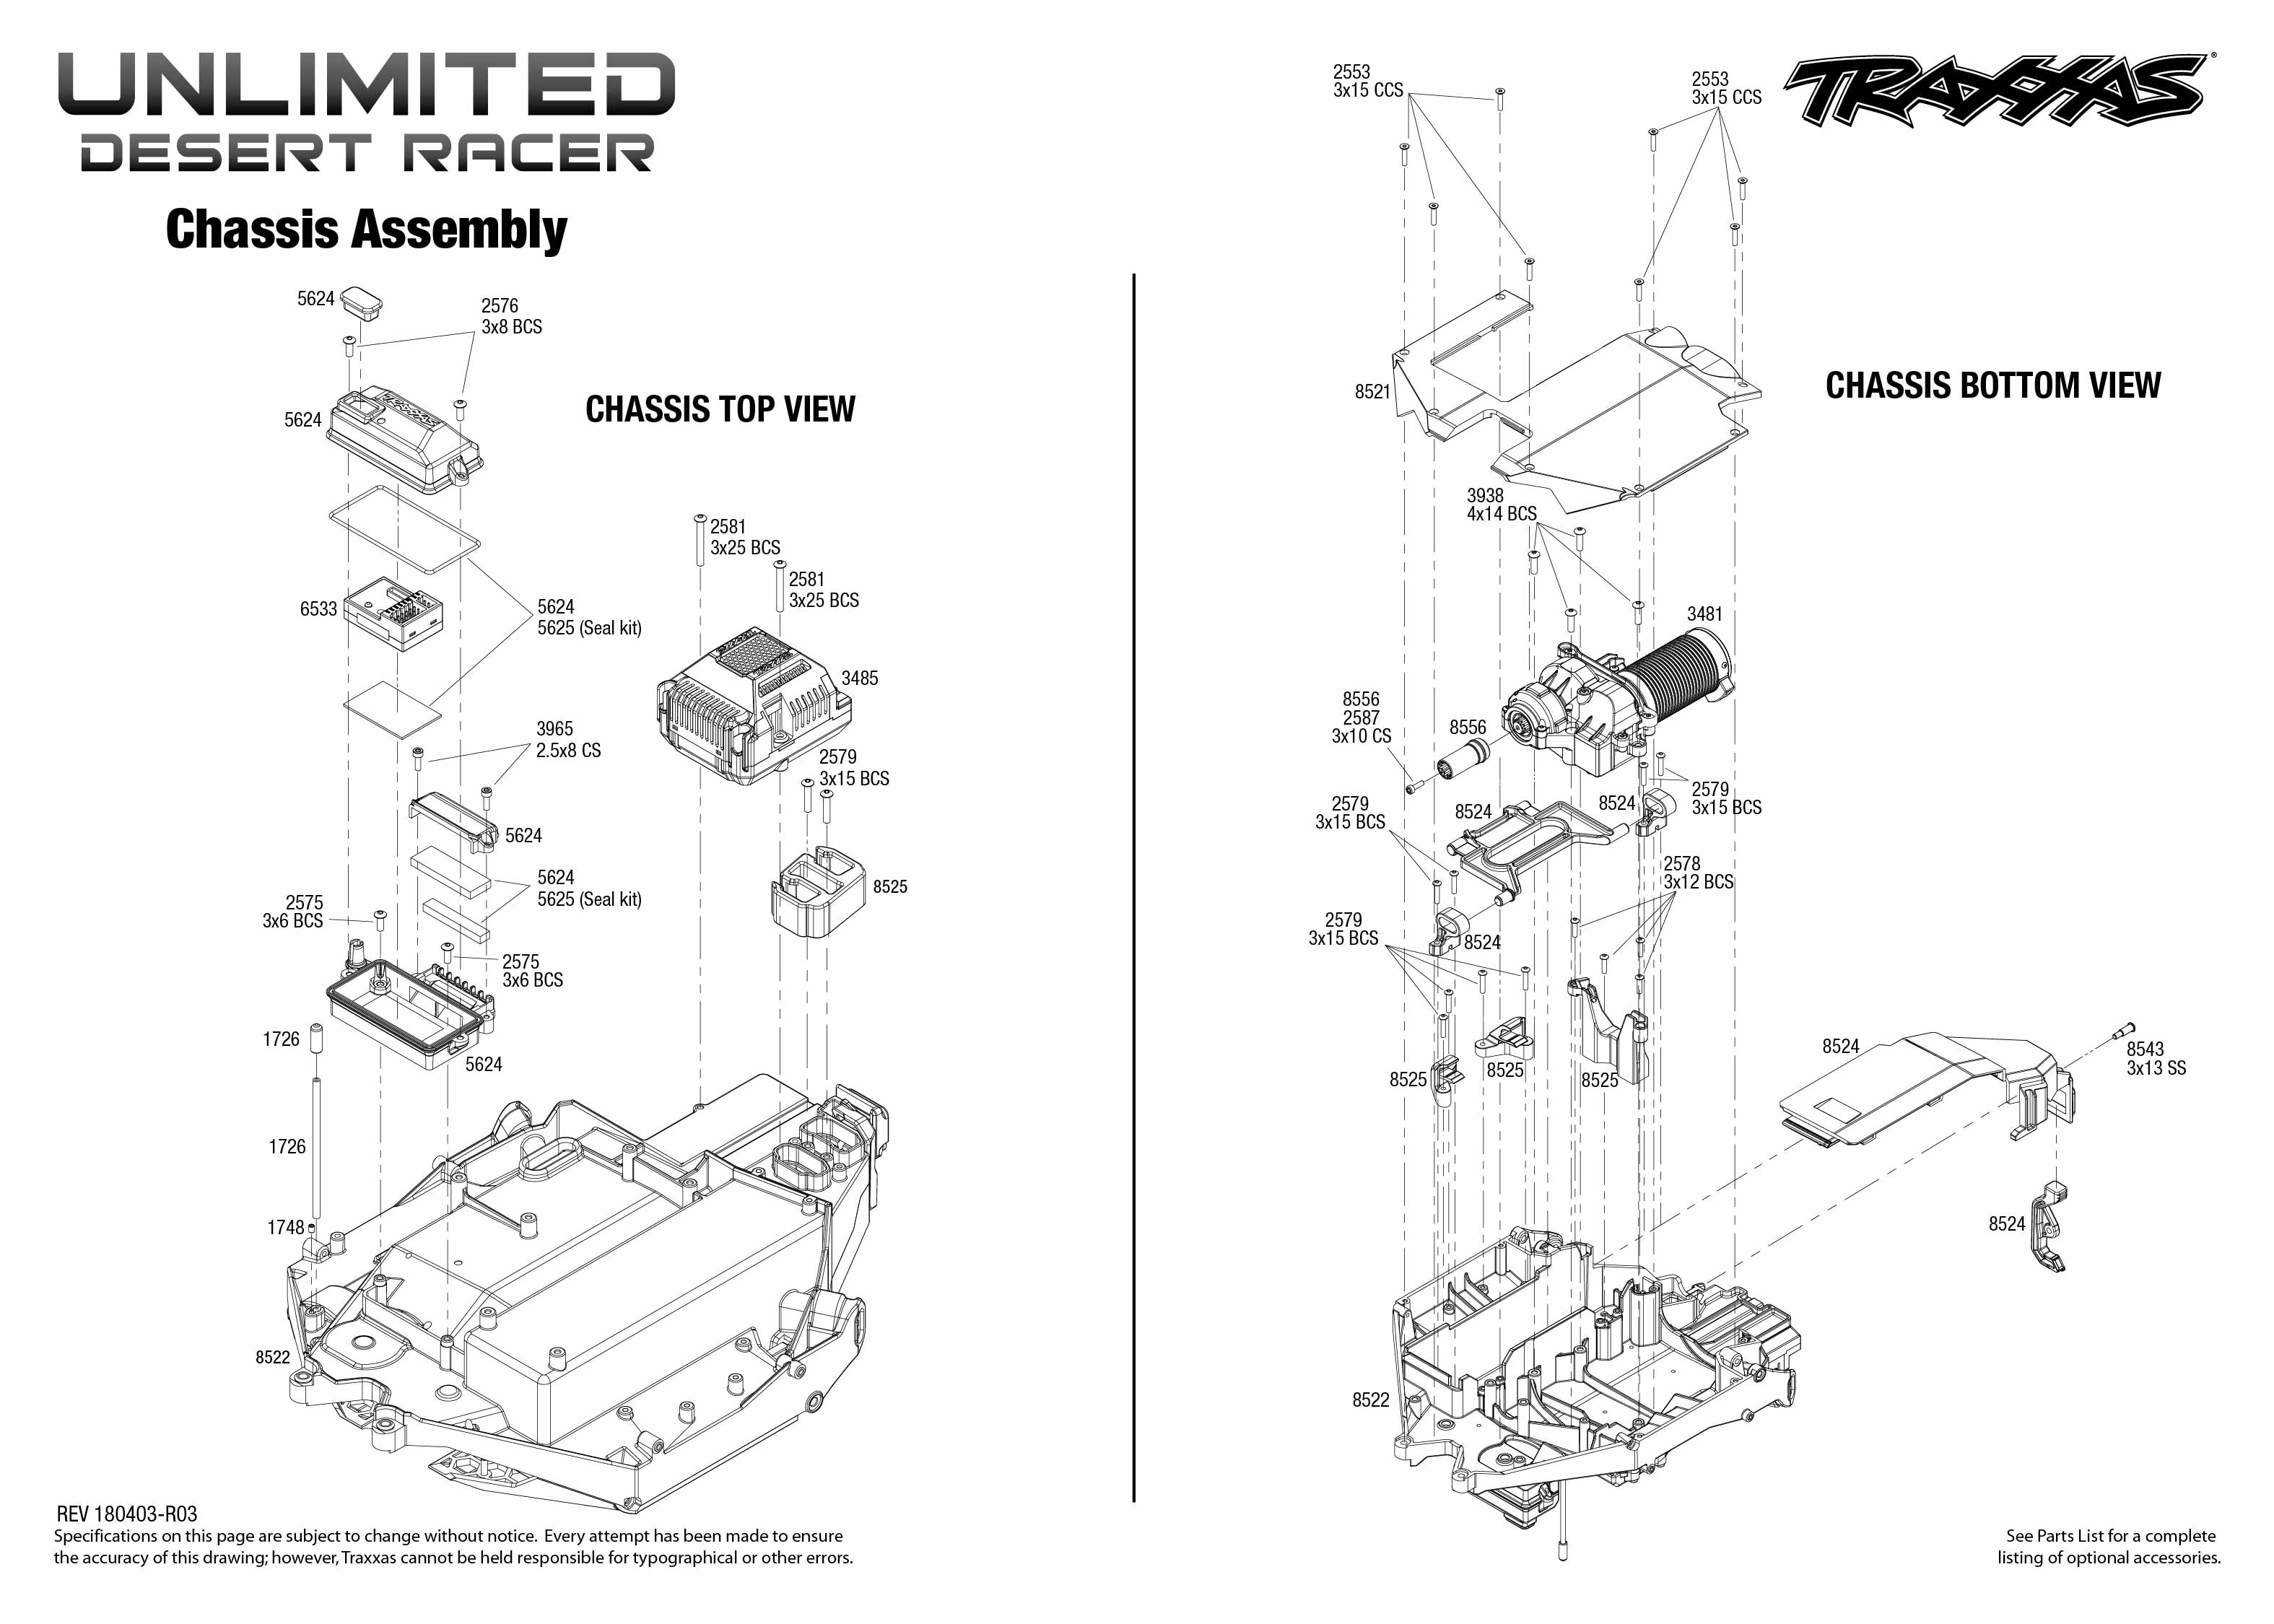 Exploded view: Traxxas Unlimited Desert Racer 1:8 TSM RTR